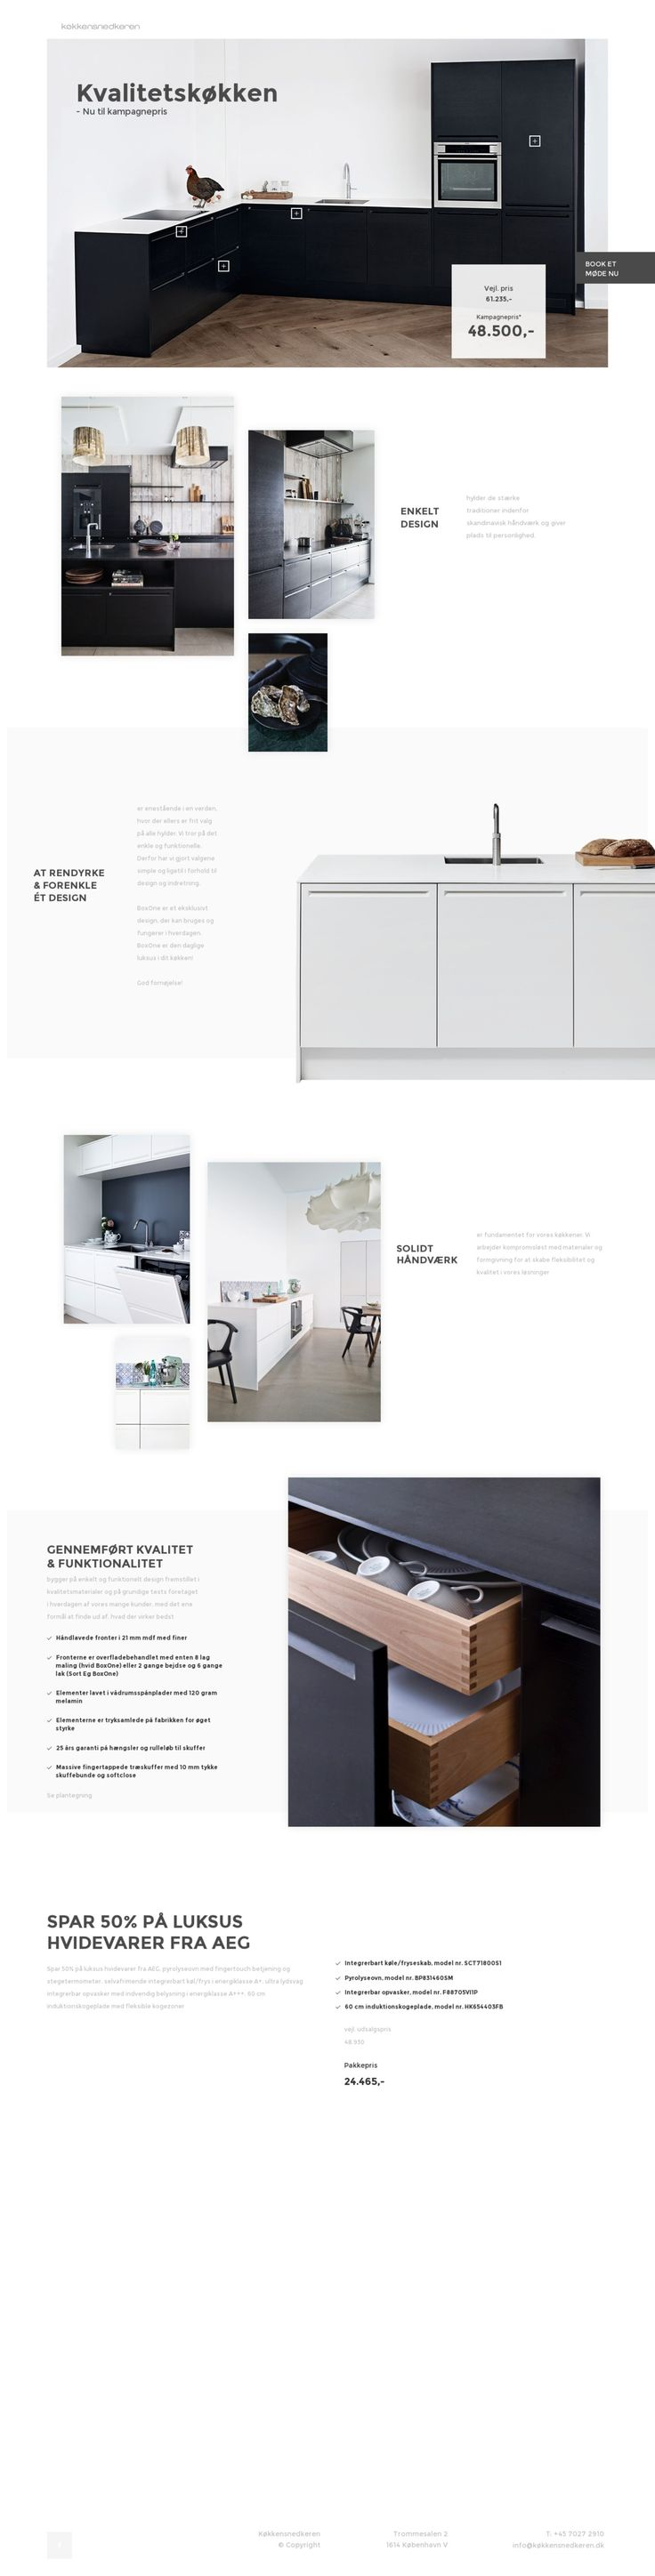 kitchen web design. Design gallery with the best and most carefully collected websites  We help creatives find inspiration motivation to do rad stuff 2452 Web design images on Pinterest Website designs